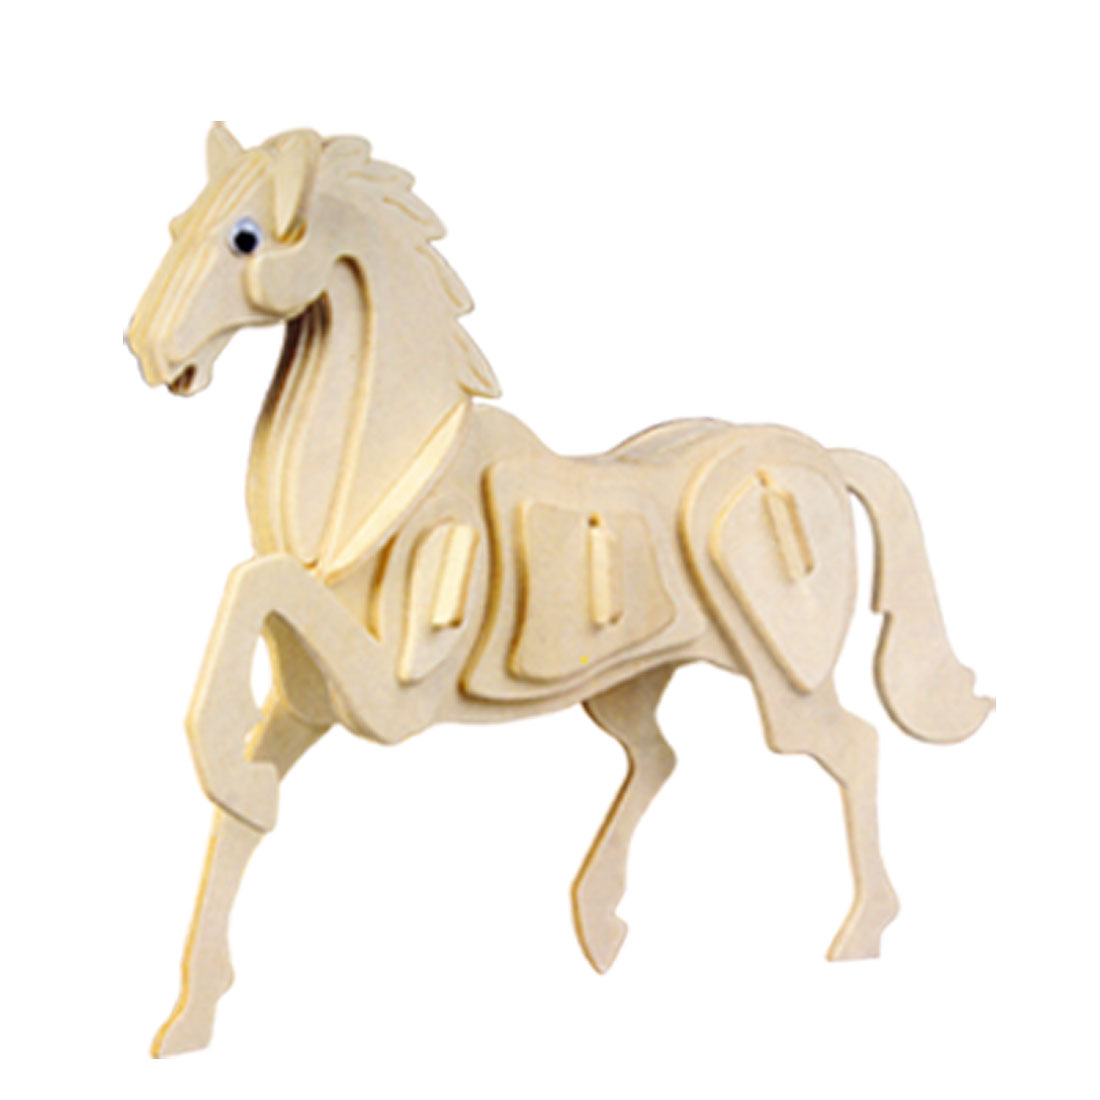 Educational Wooden 32-Piece Assemble Horse DIY Model Toy